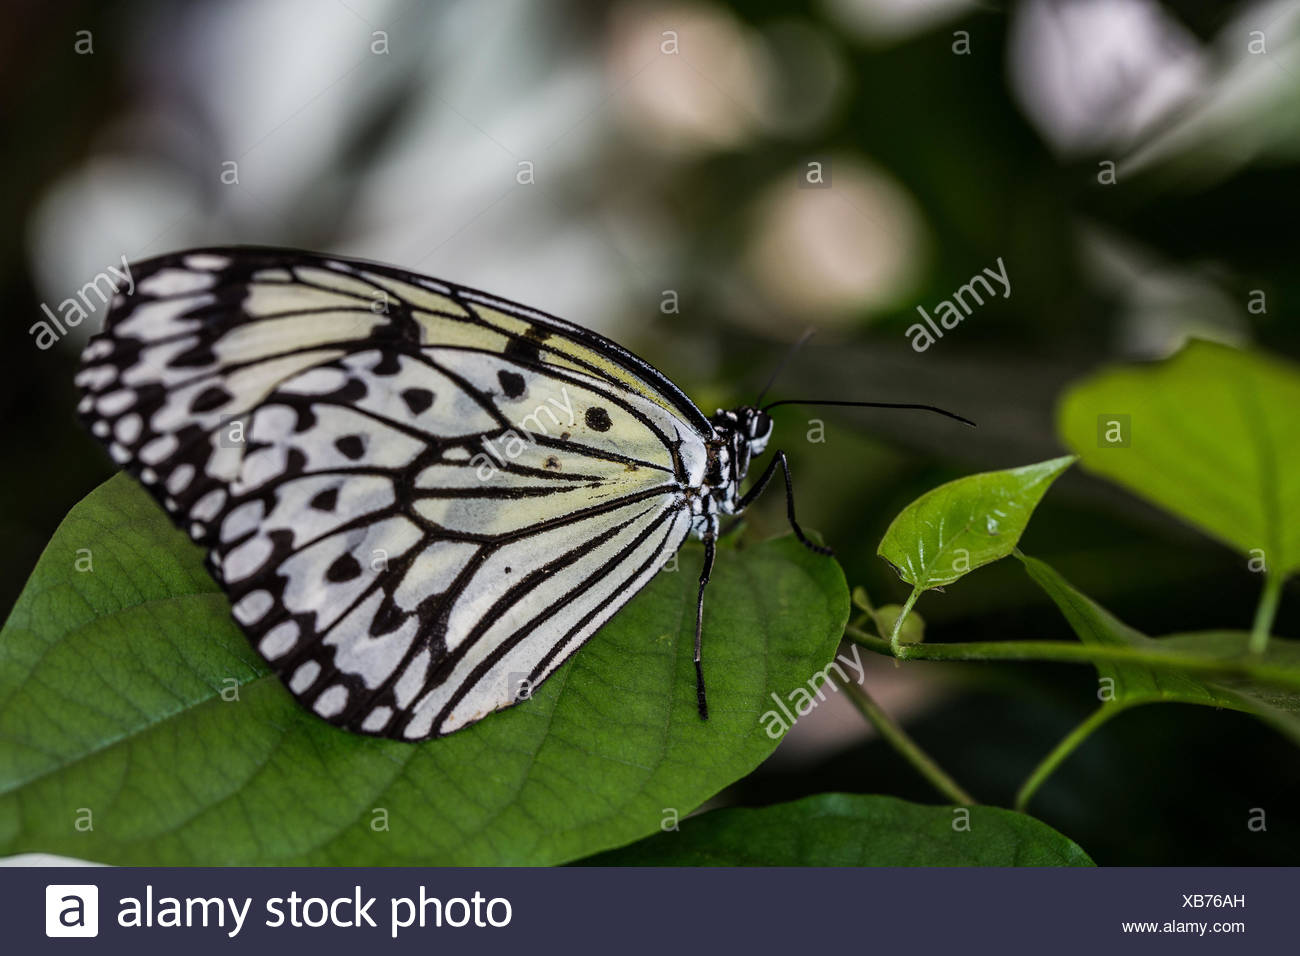 white tree nymph - Stock Image